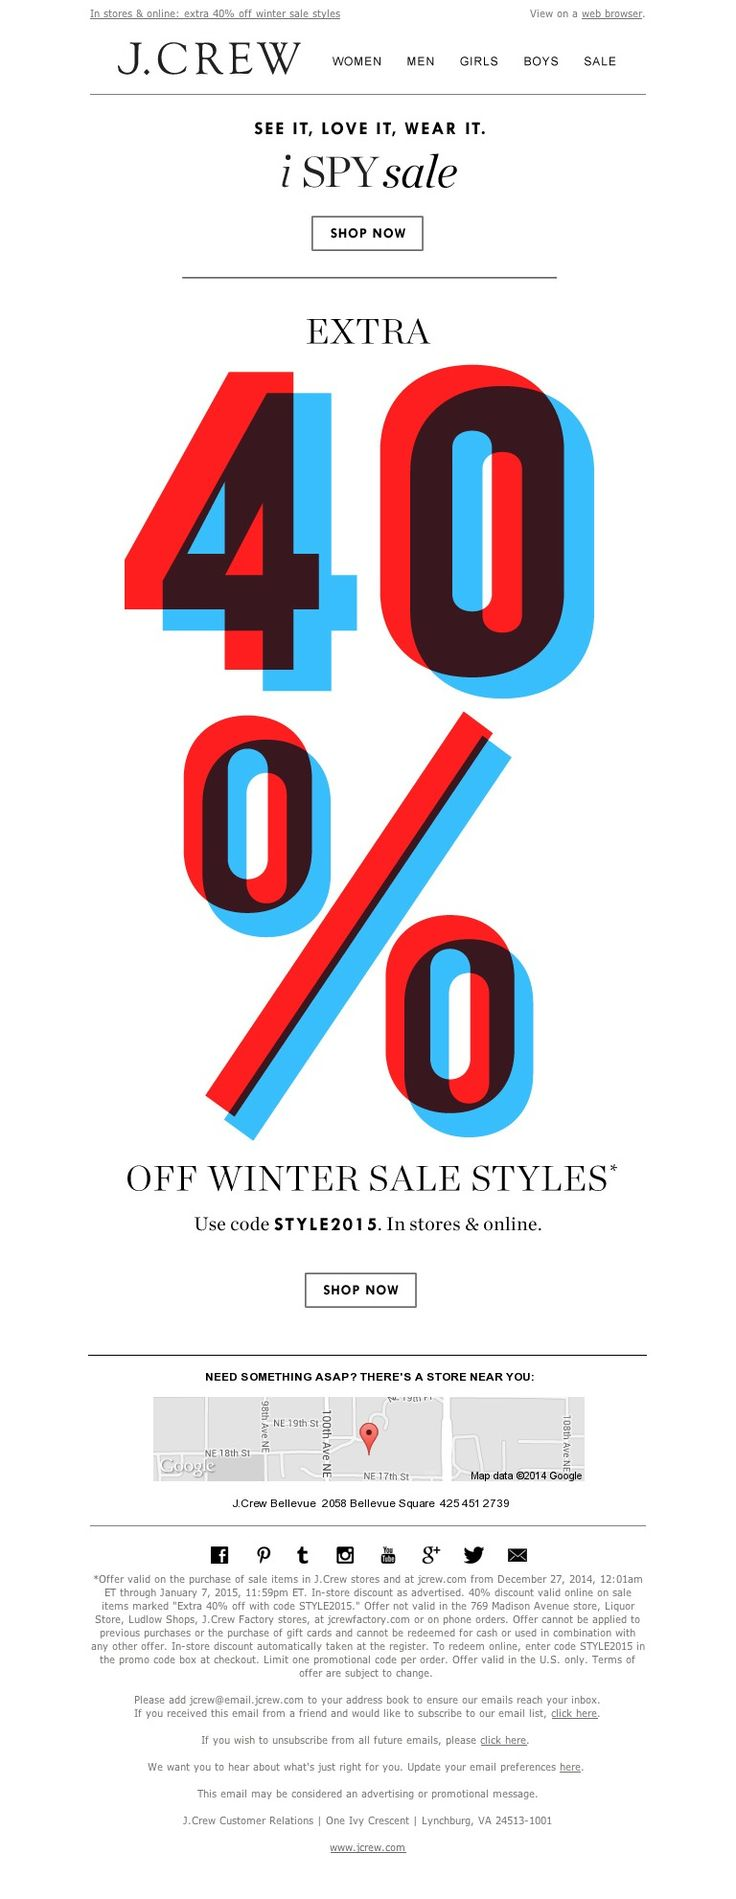 J.Crew - There's plenty to see in our sale (like an extra 40% off)